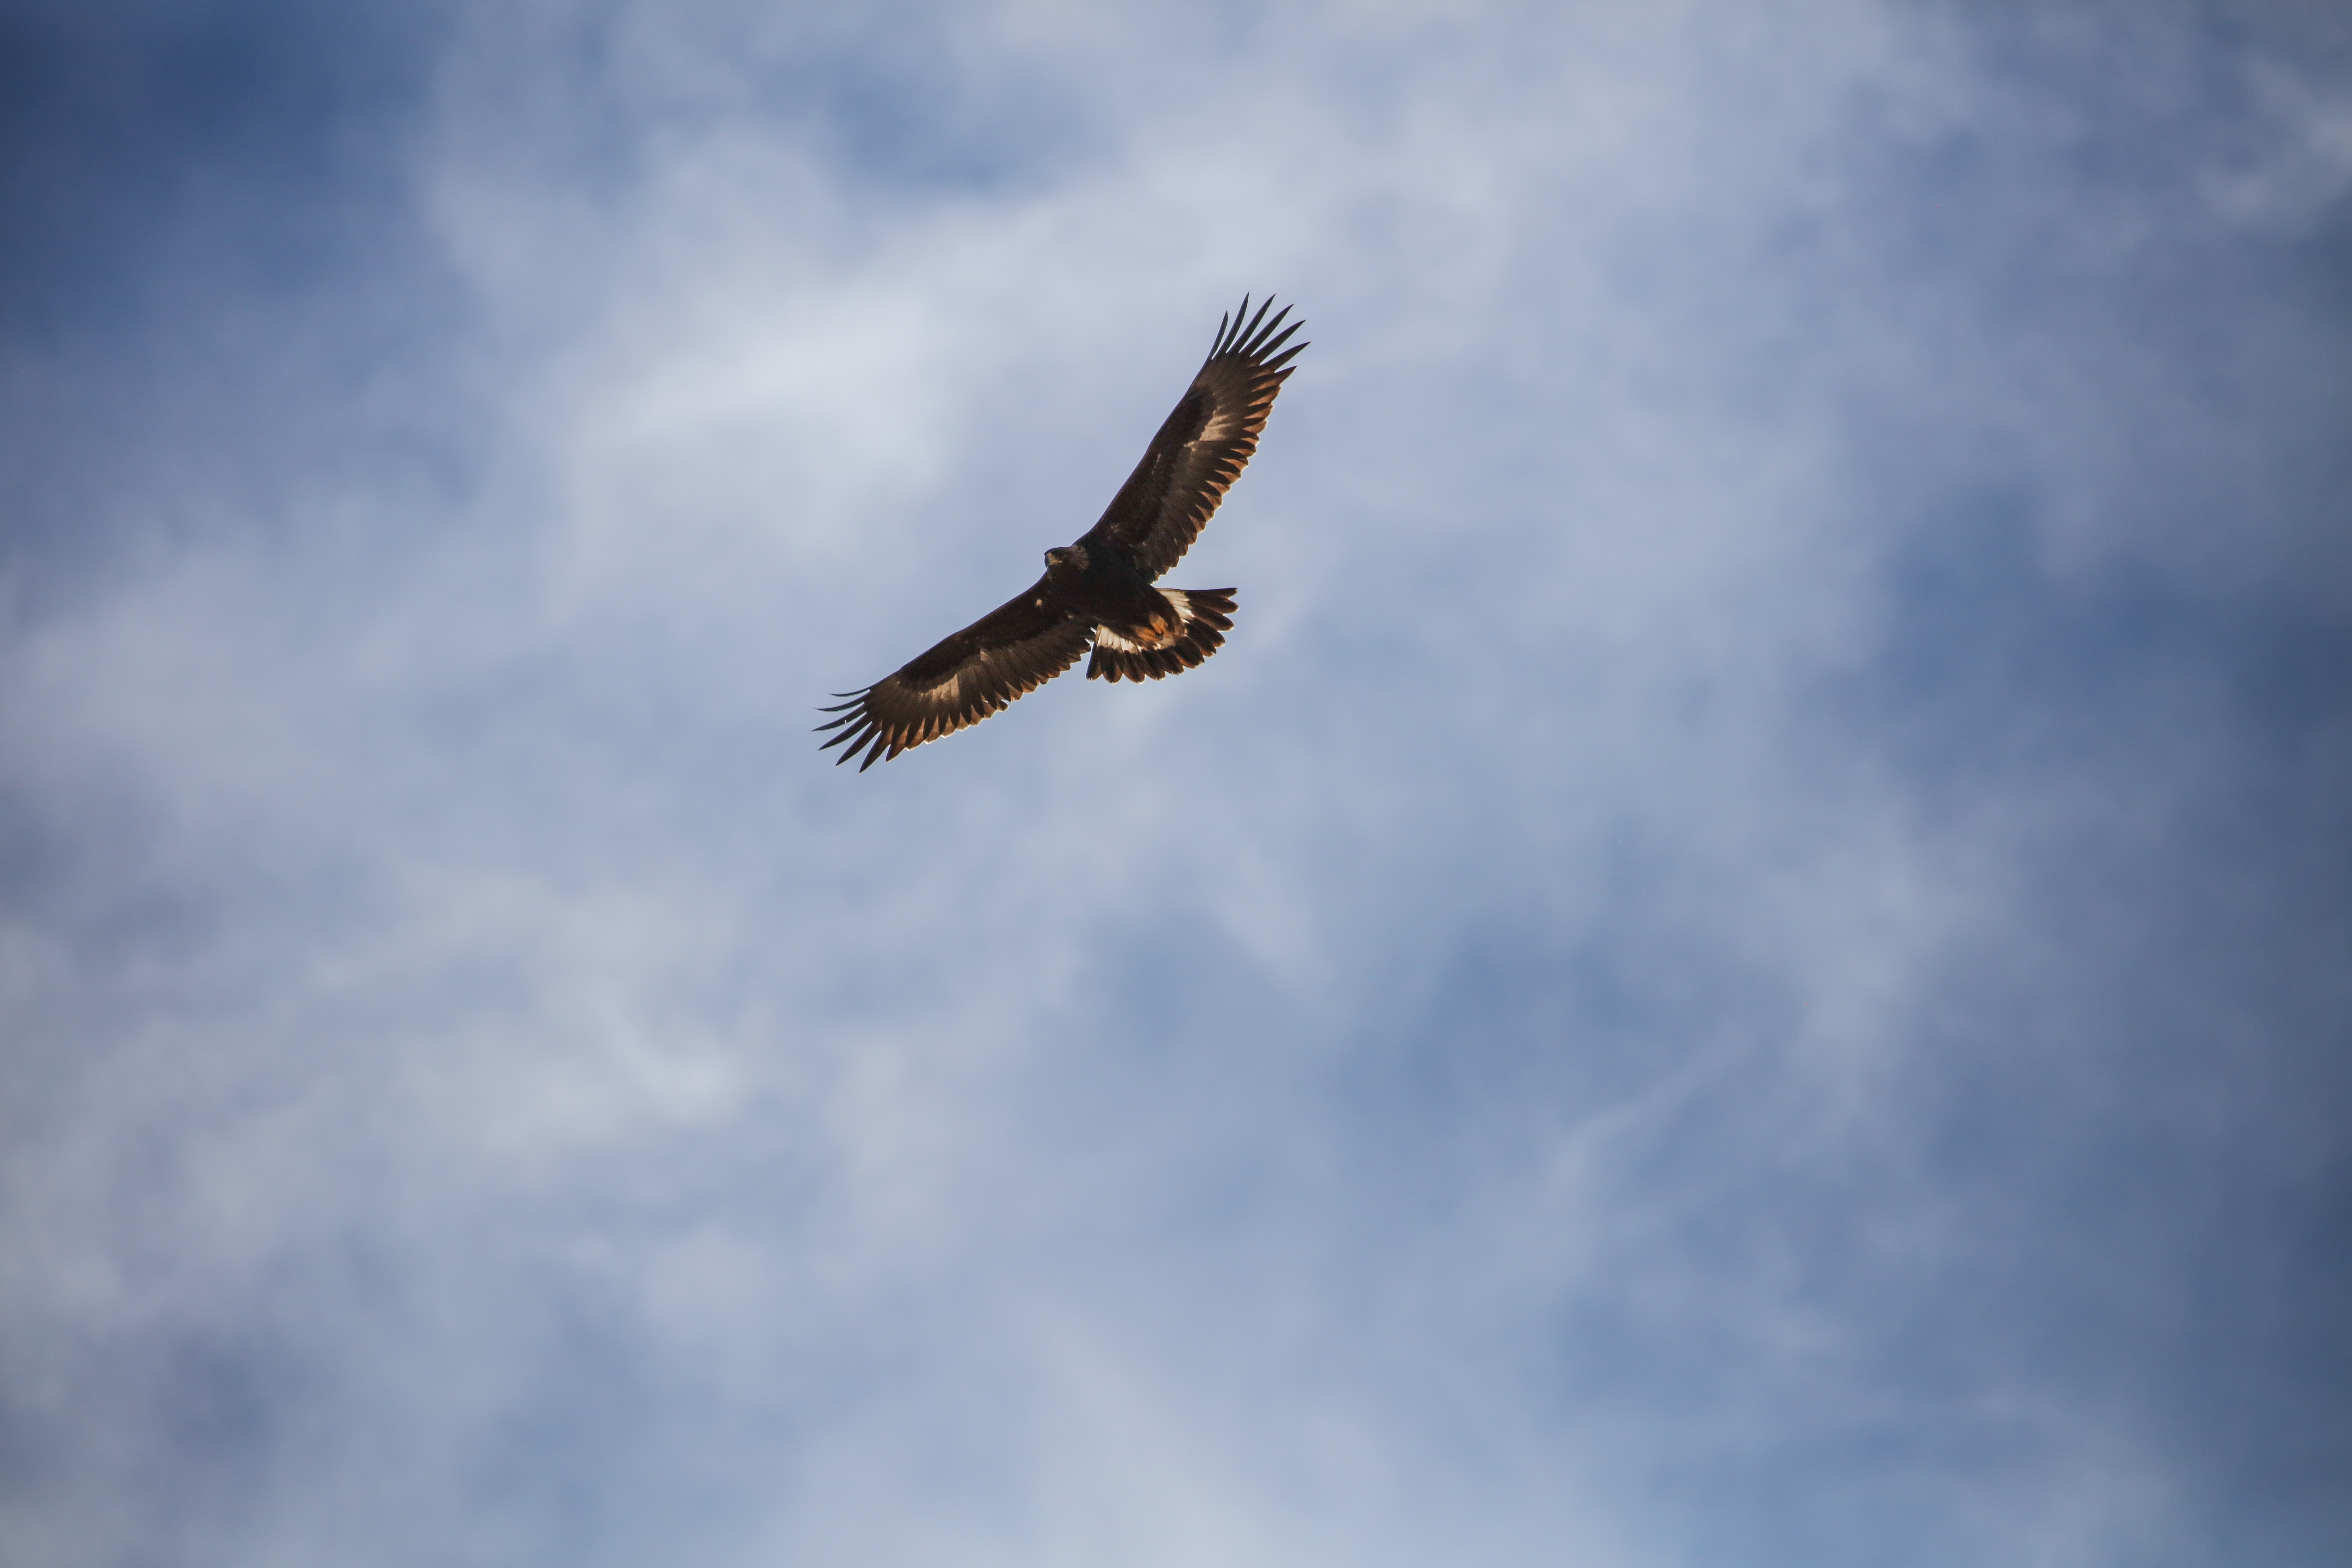 low angle photo of brown hawk flying at daytime